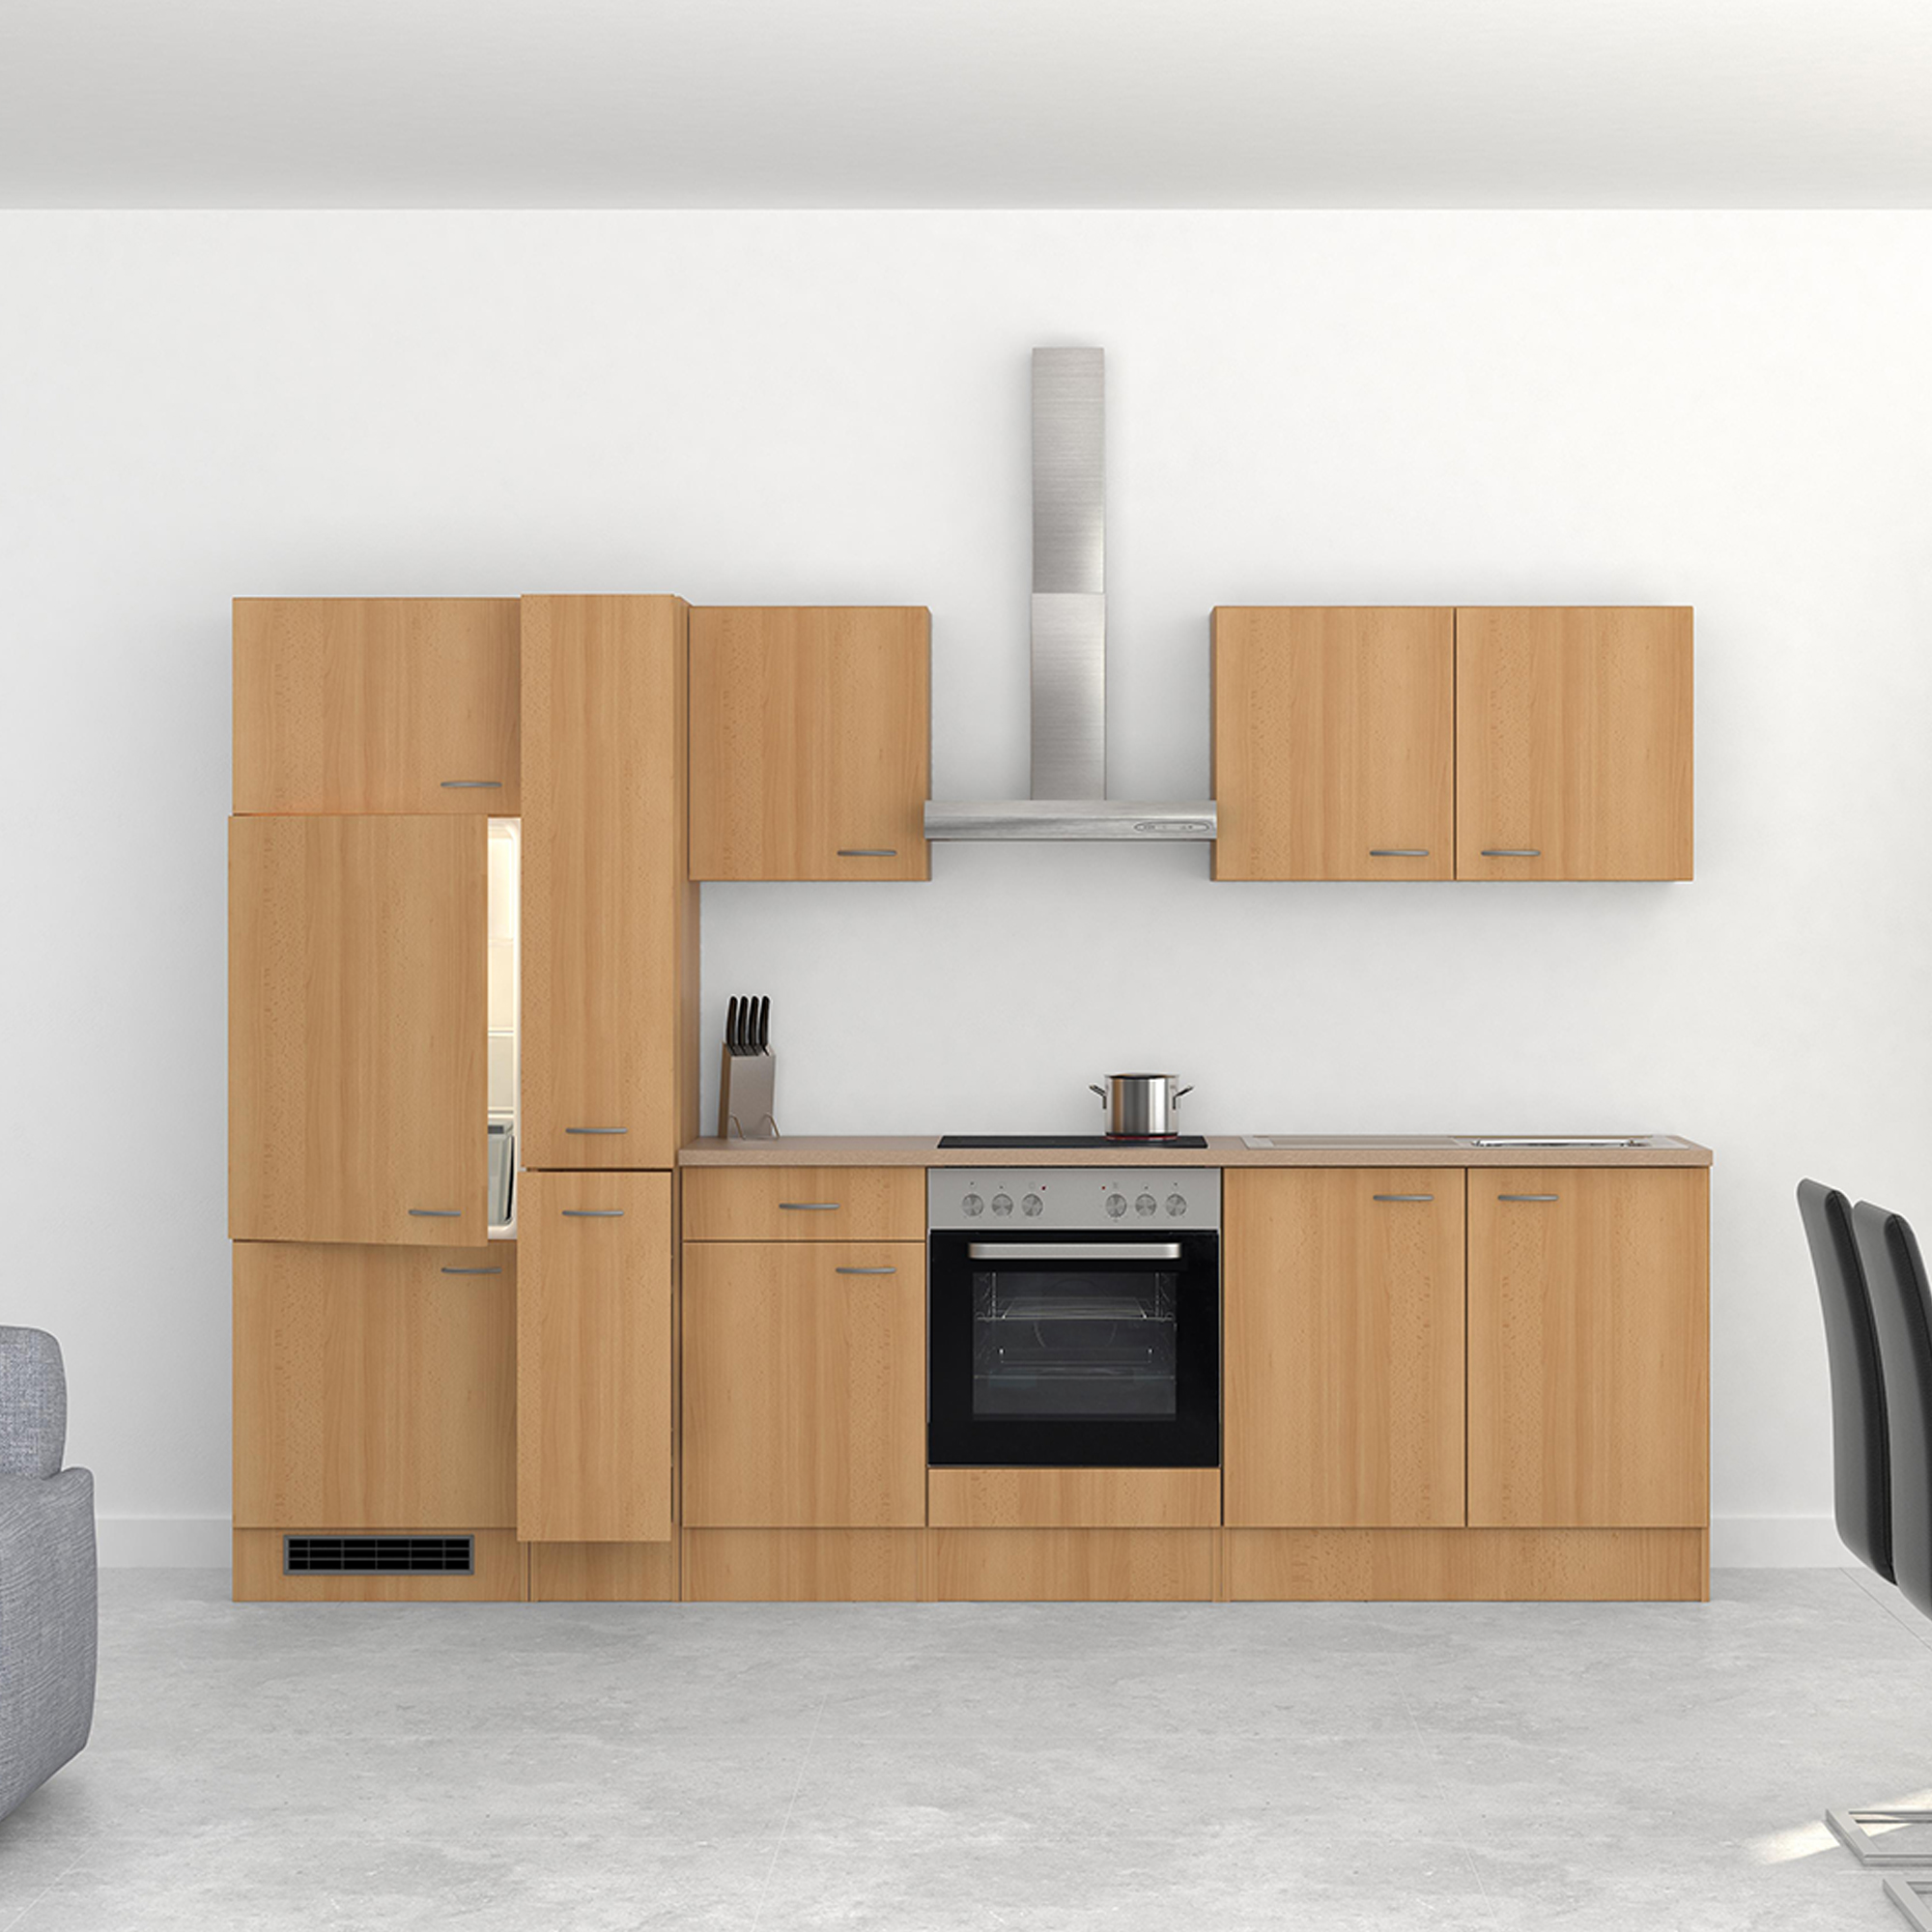 k chen h ngeschrank nano 1 t rig 50 cm breit buche k che k chen h ngeschr nke. Black Bedroom Furniture Sets. Home Design Ideas